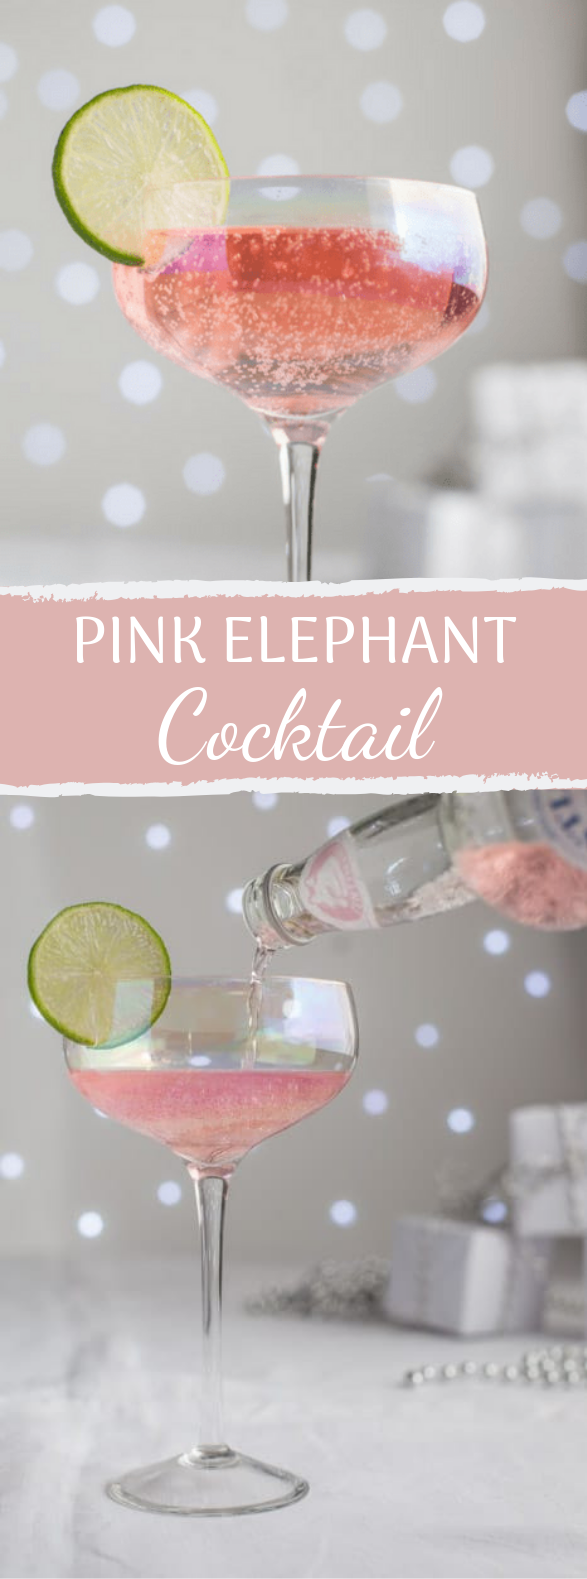 Pink Elephant Cocktail #drinks #holiday